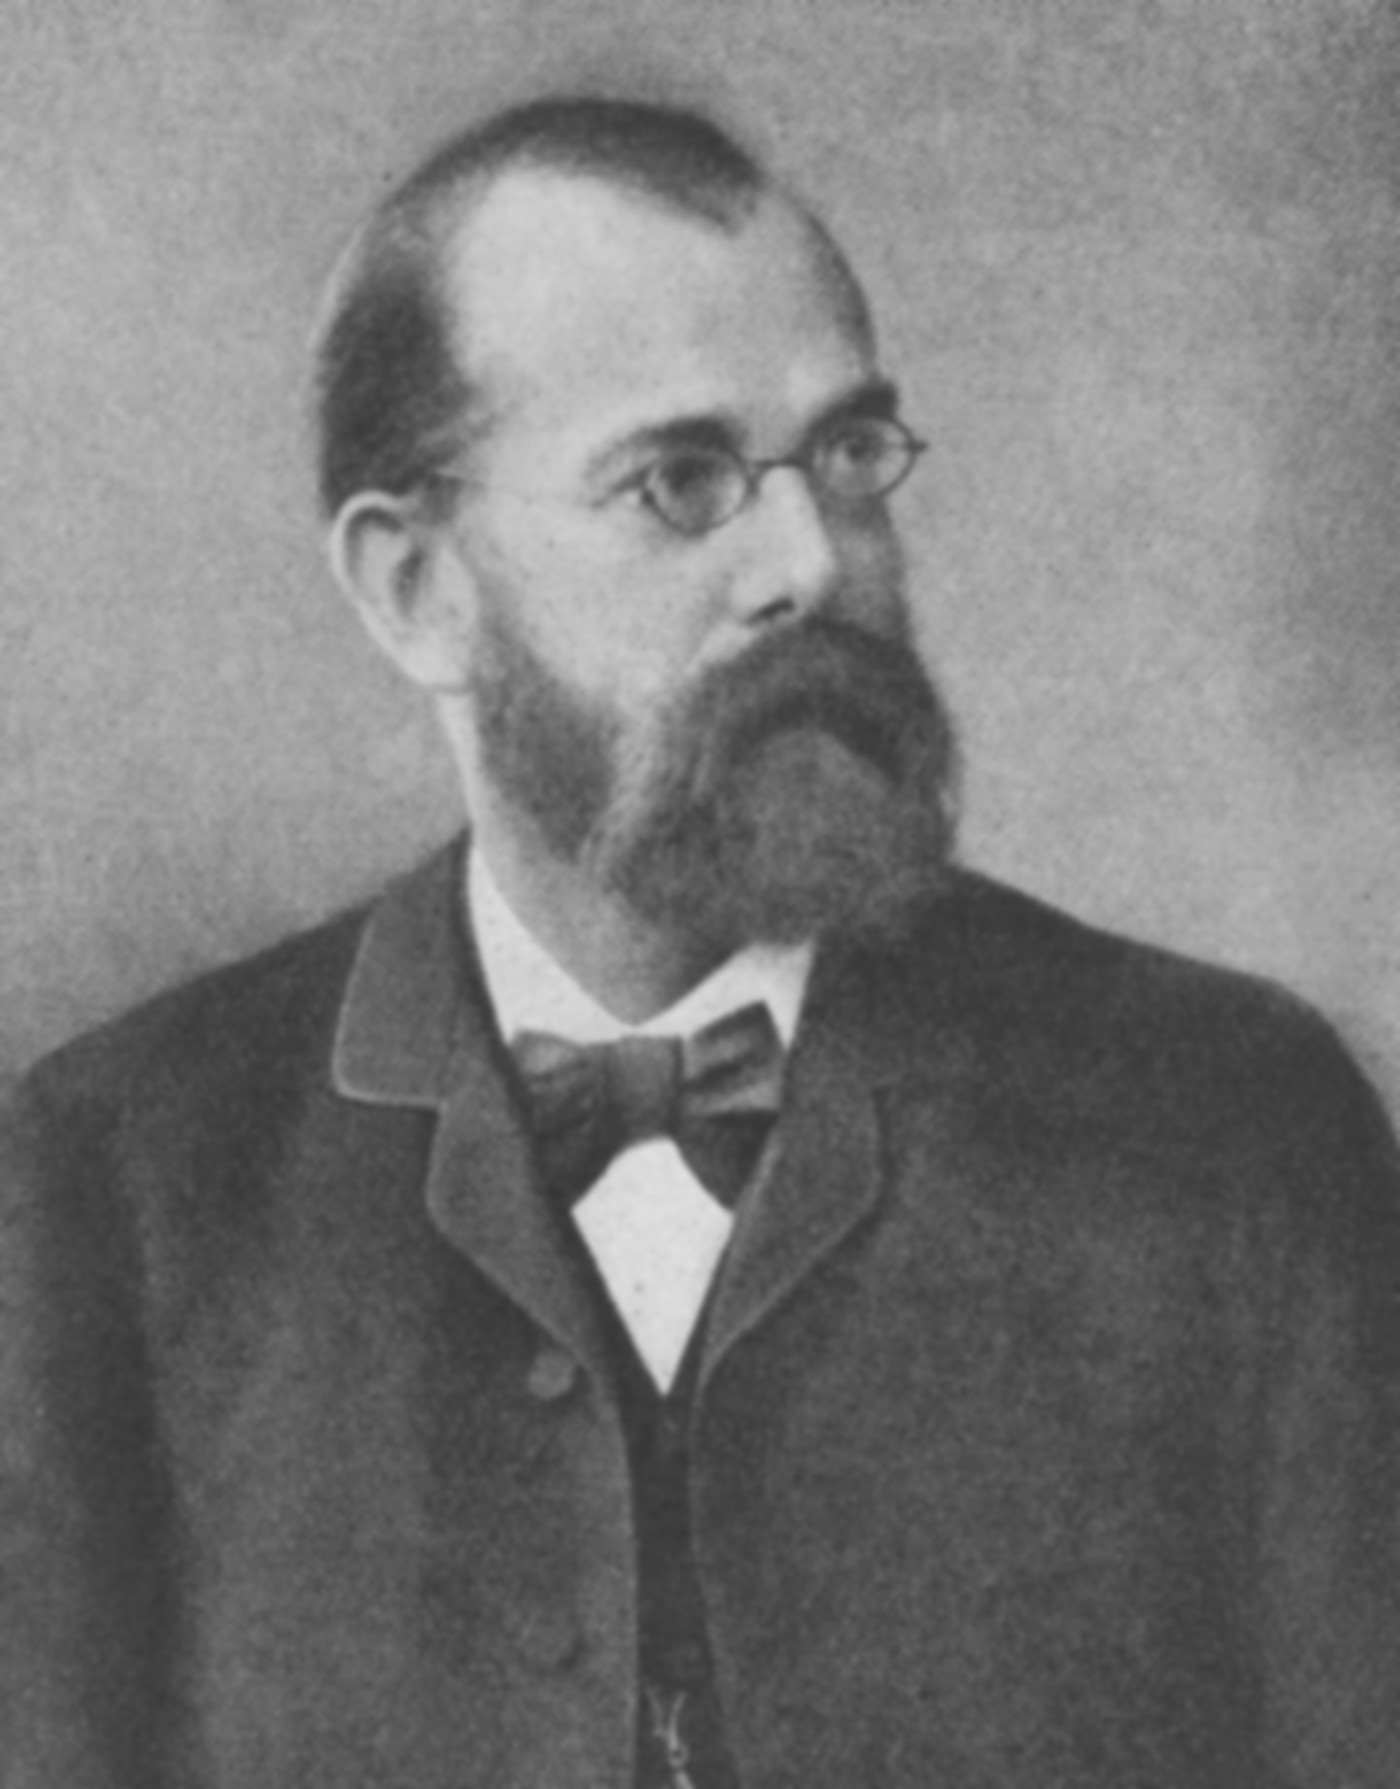 http://upload.wikimedia.org/wikipedia/commons/d/d6/Robert_Koch_(young).jpg